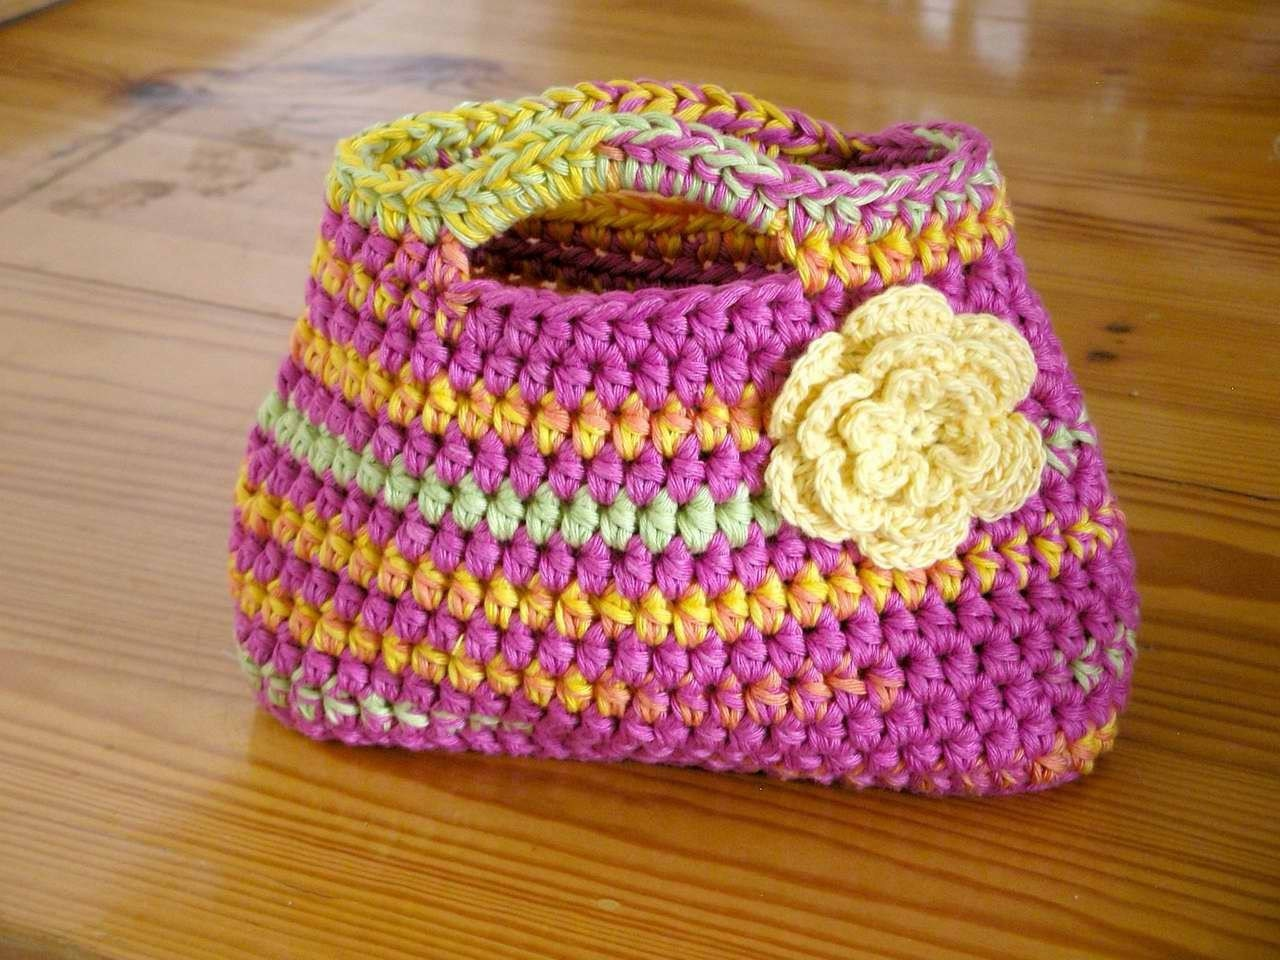 Handbag crochet pattern easy peasy little kids bag crochet zoom bankloansurffo Image collections